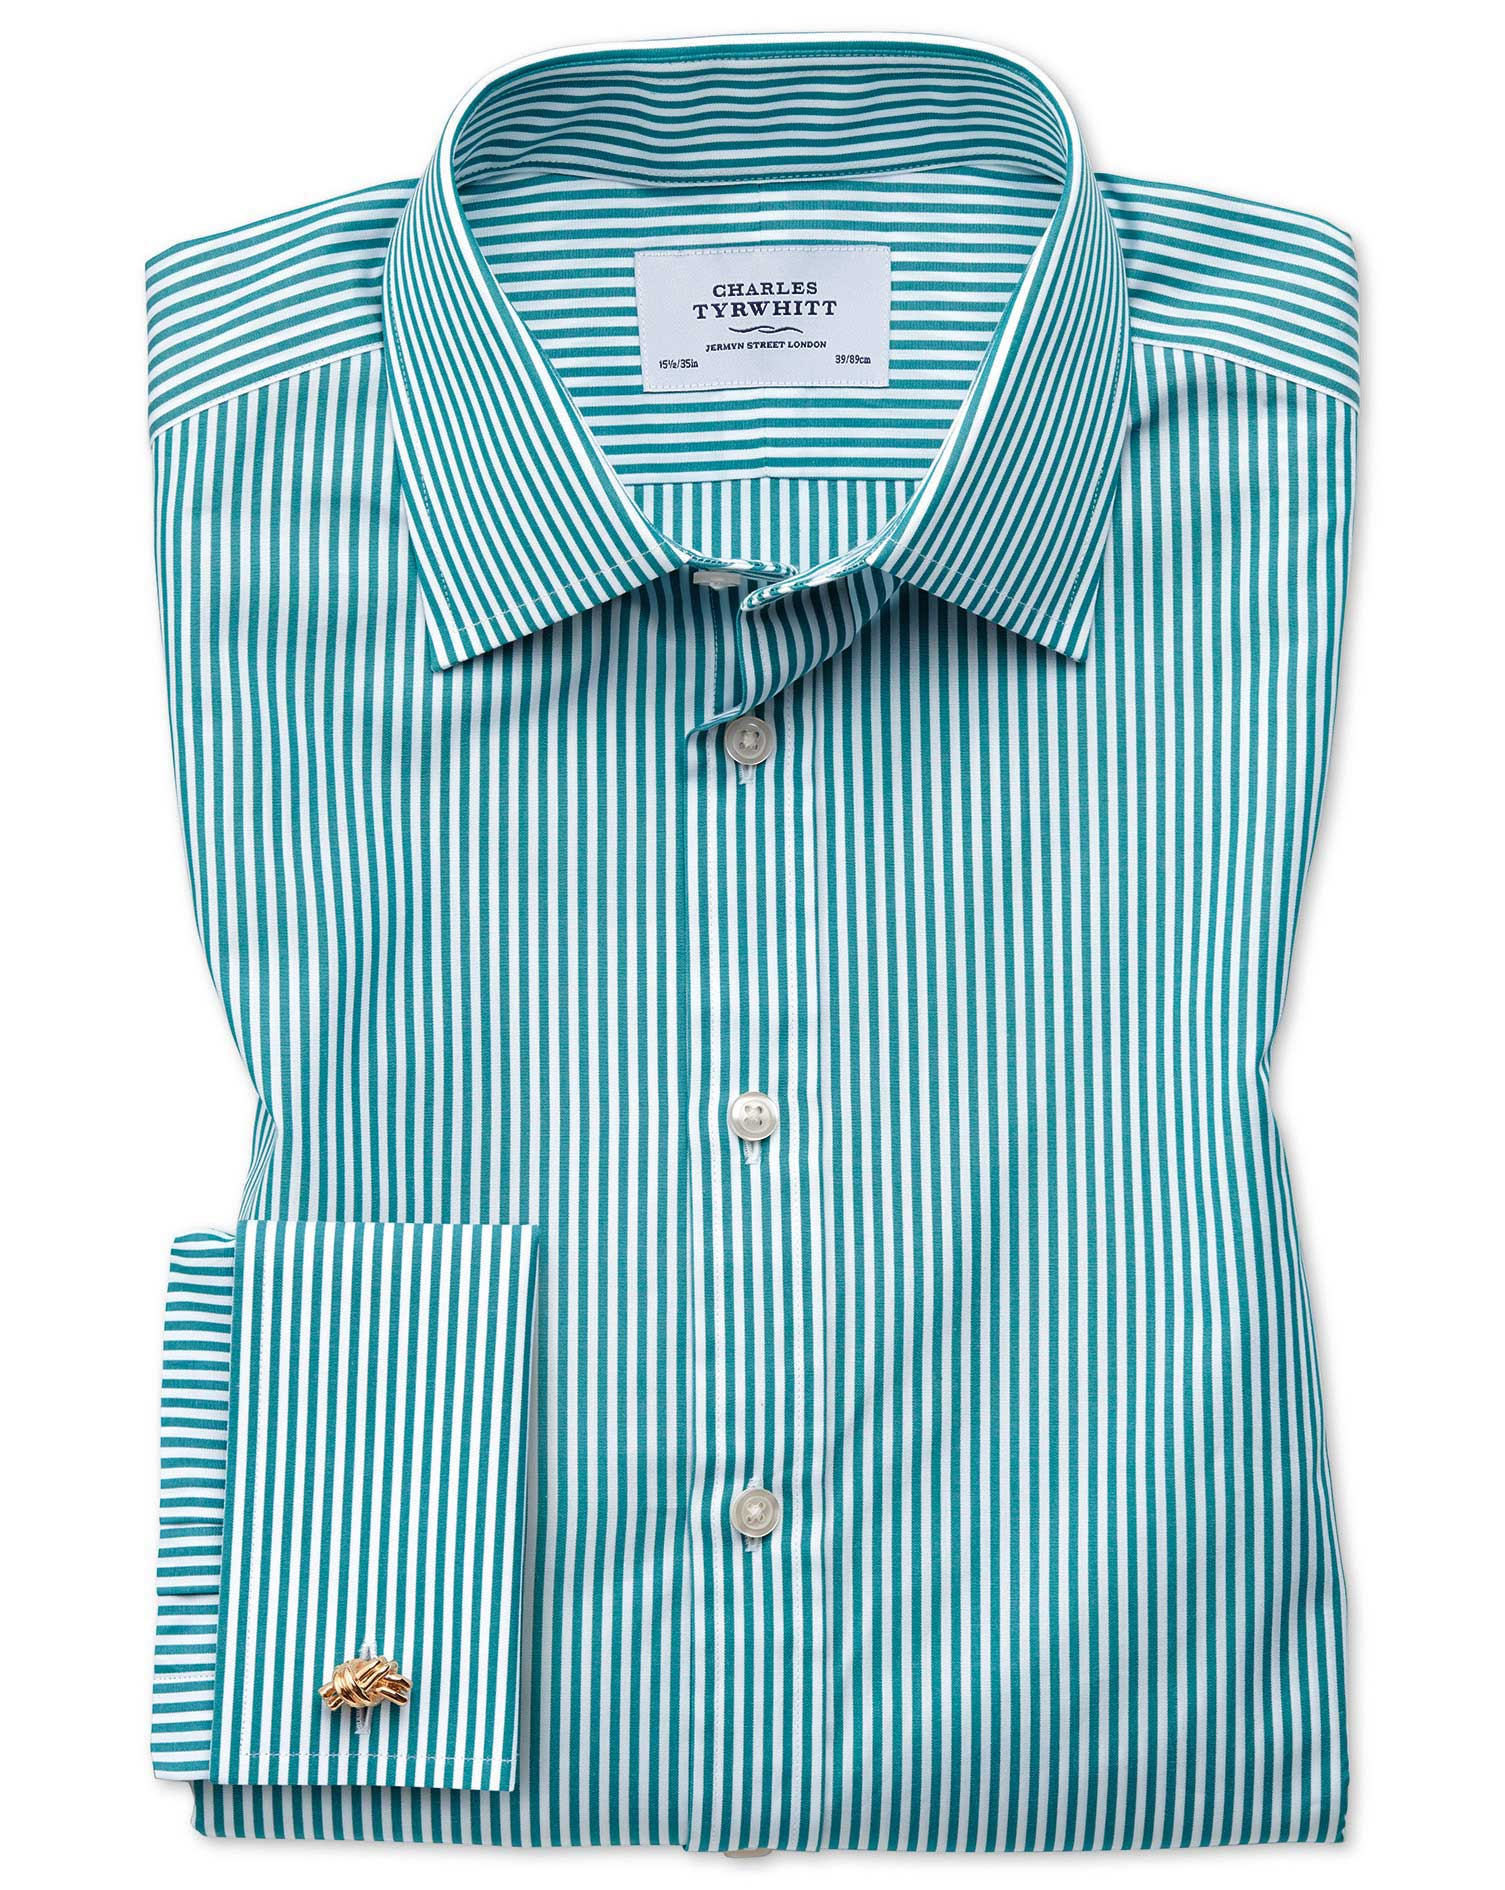 Classic Fit Bengal Stripe Green Cotton Formal Shirt Single Cuff Size 17.5/34 by Charles Tyrwhitt